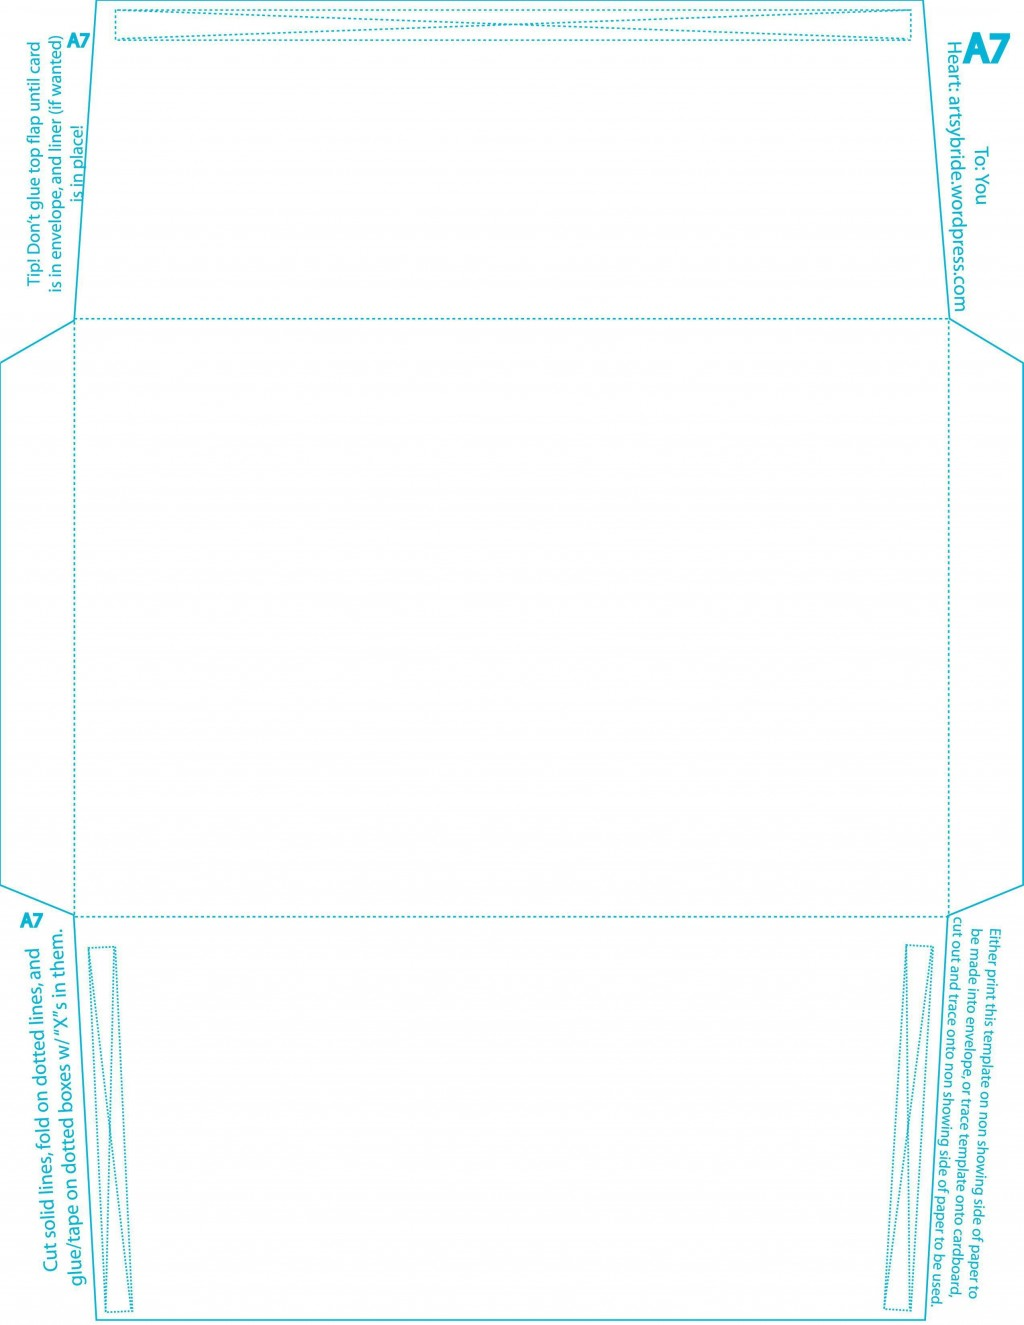 007 Top A7 Envelope Liner Template Free High Resolution Large